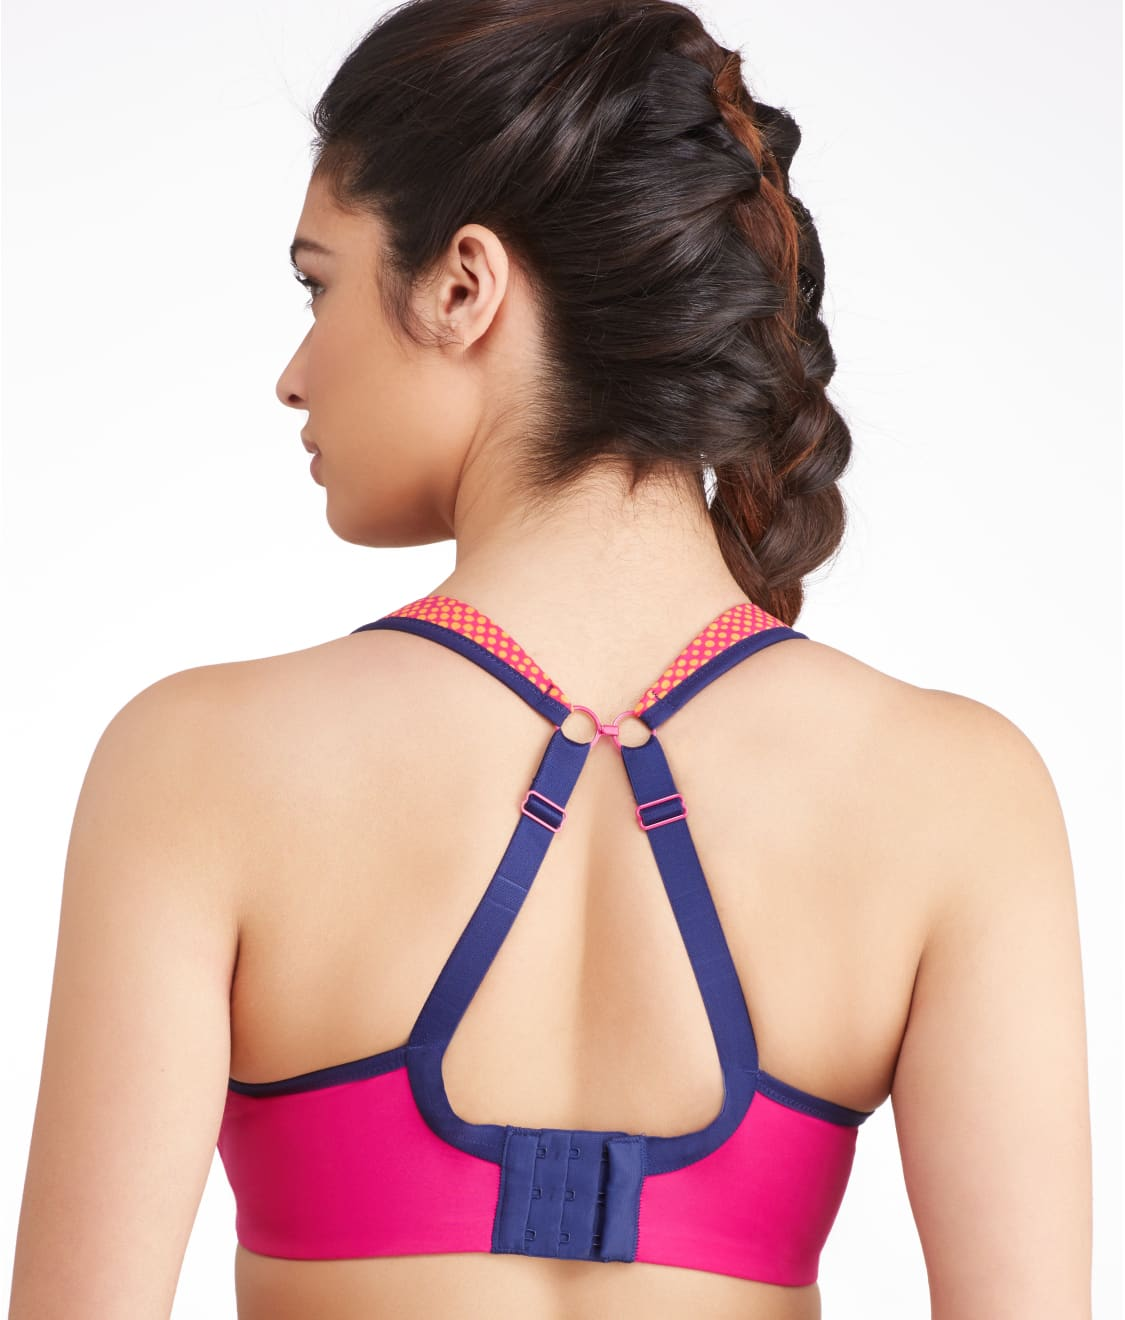 a60a435fc0d See Ultimate High Impact Underwire Sports Bra in Magenta